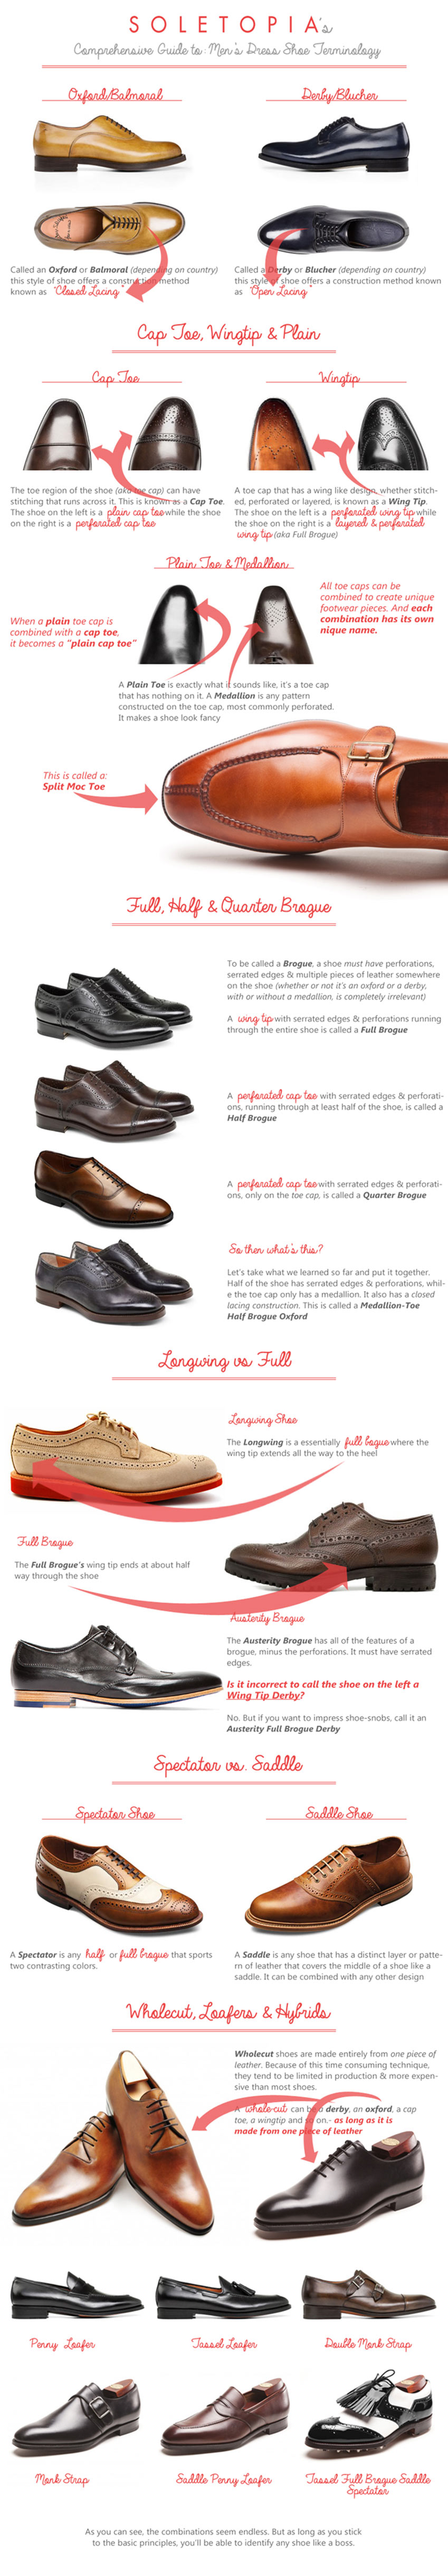 Comprehensive Guide to Men's Dress Shoe Terminology - Fashion Infographic